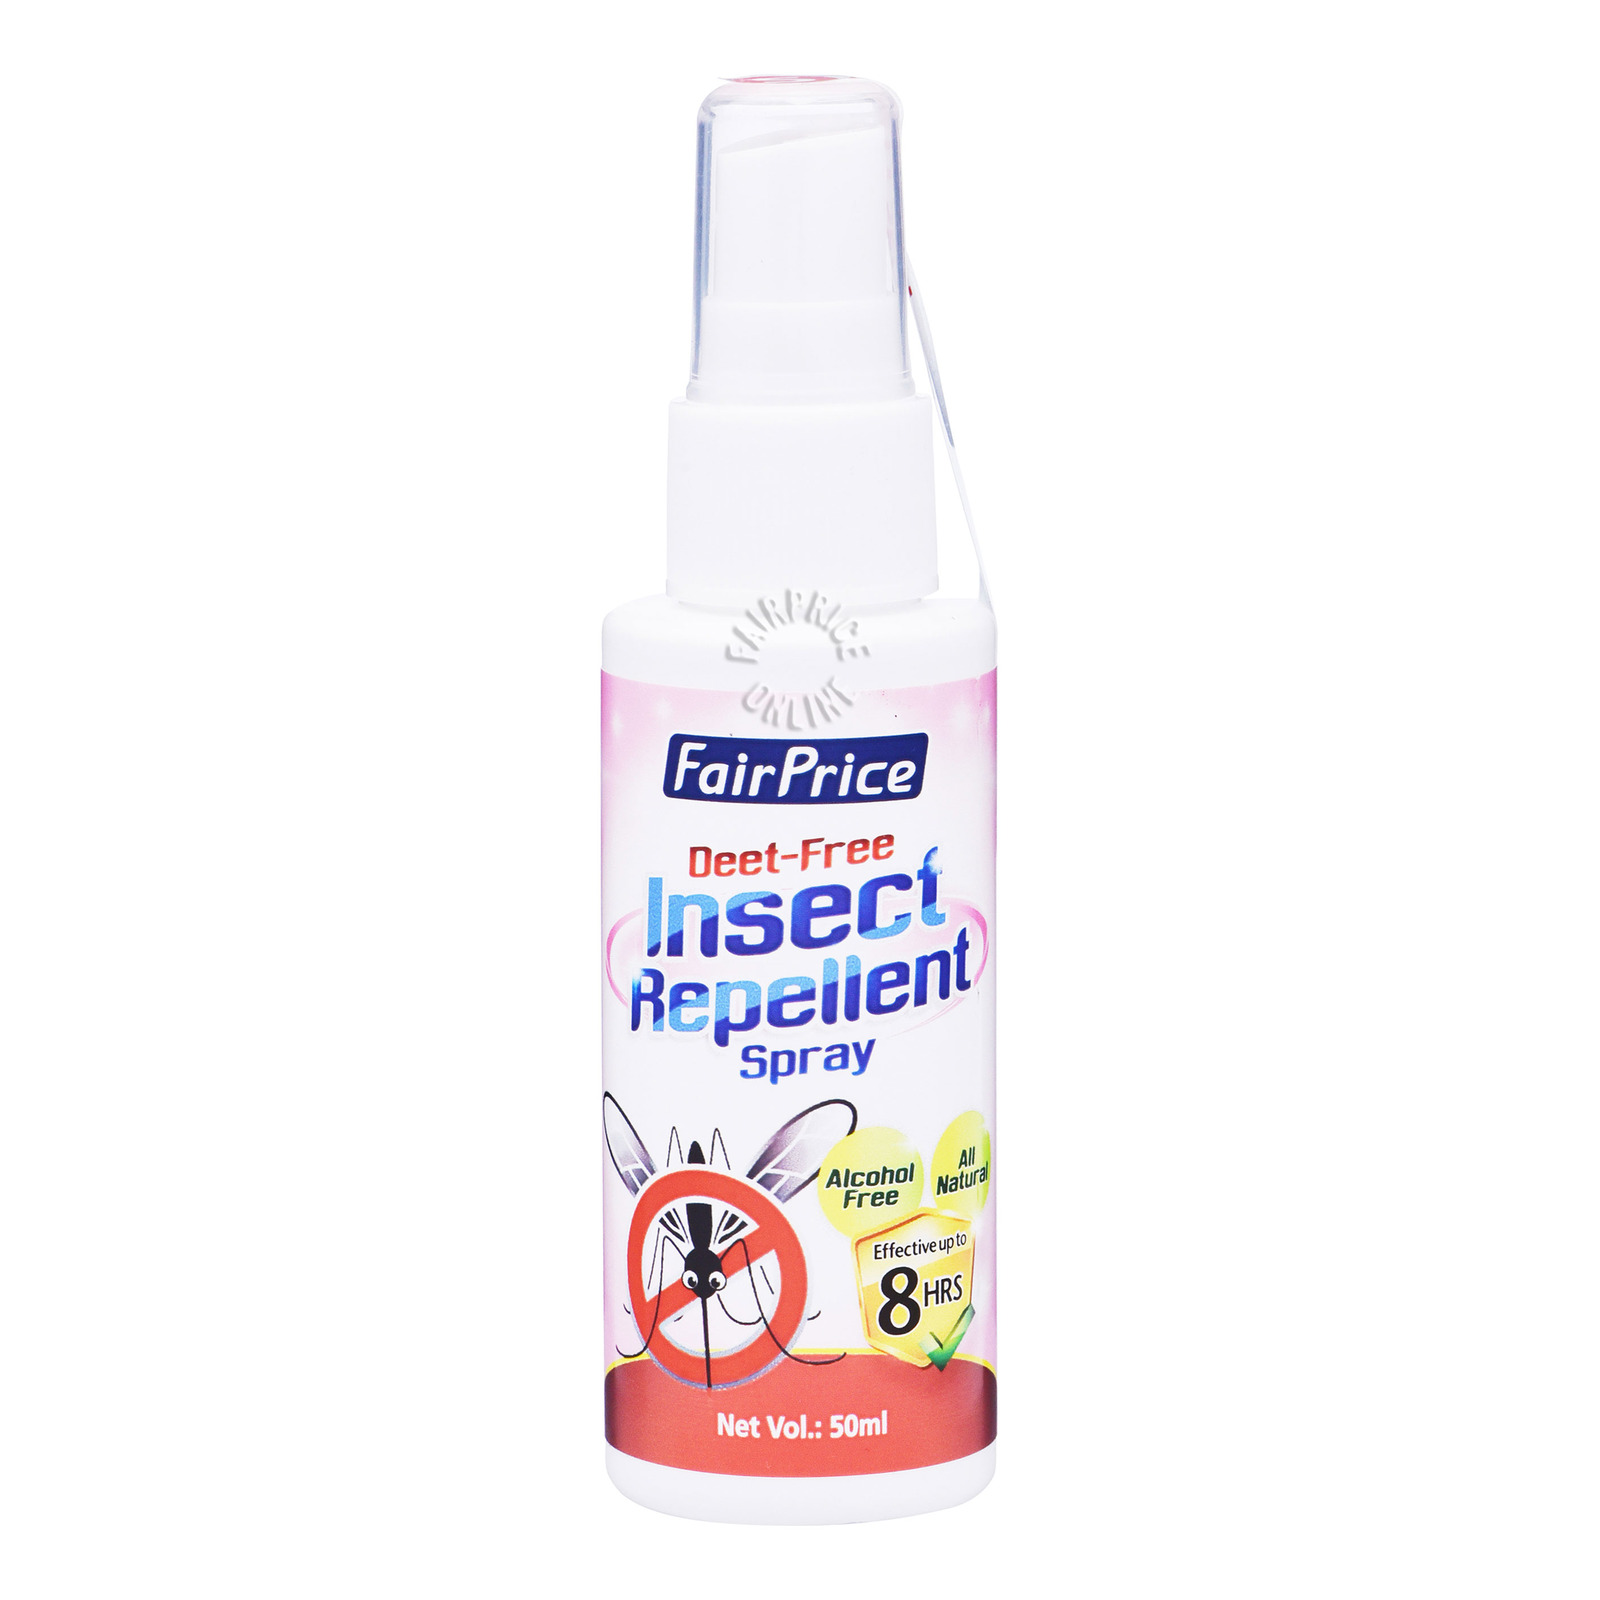 FairPrice Insect Repellent Spray